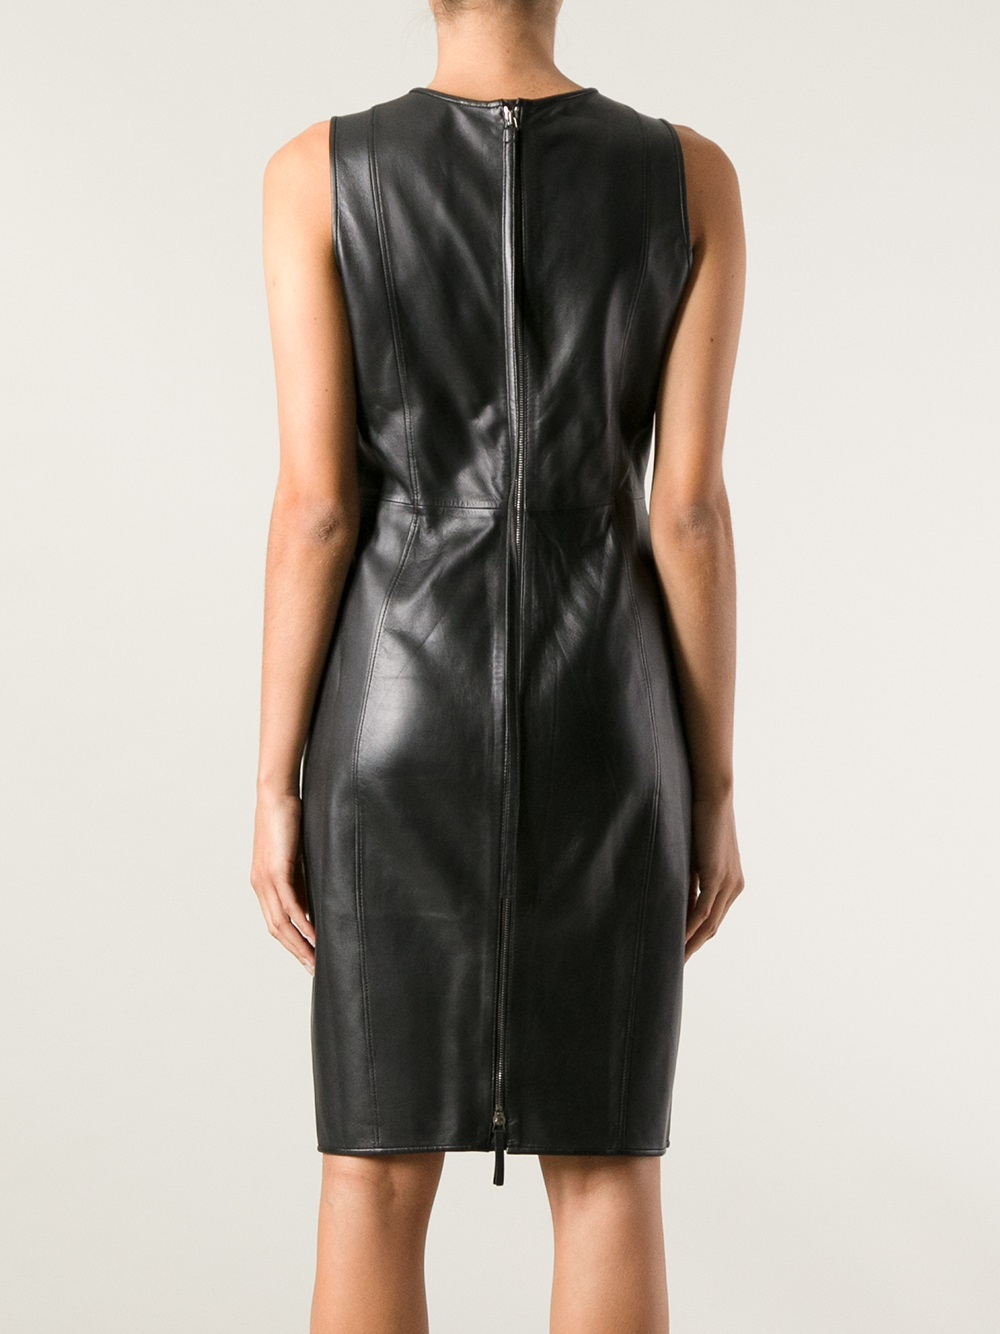 Lyst Emporio Armani Sleeveless Leather Dress In Black